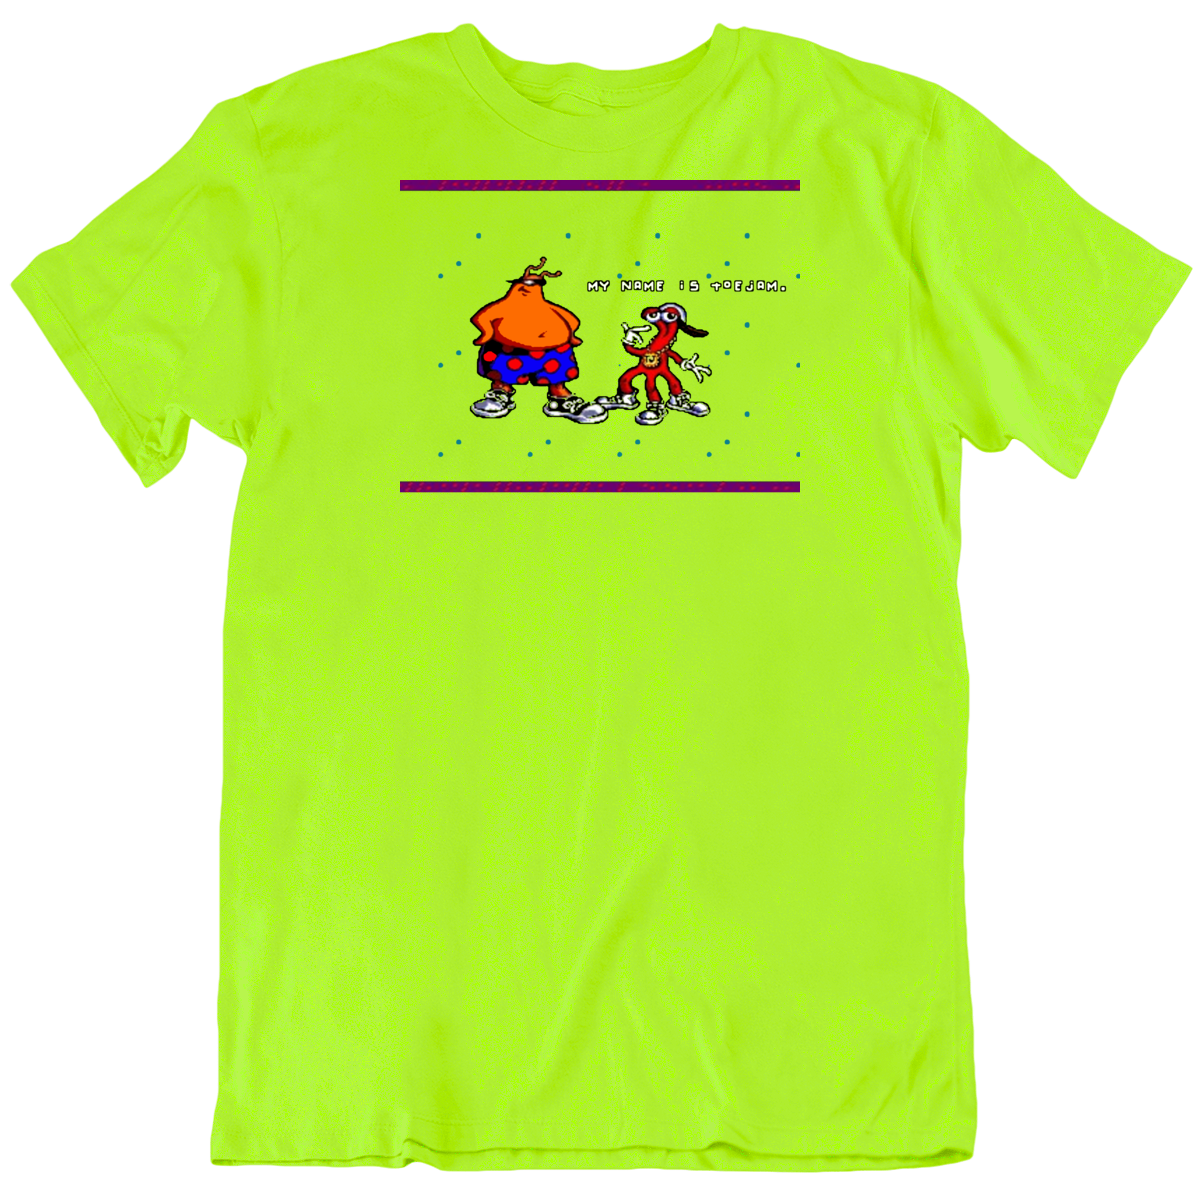 My name is Toe Jam and Big Earl Video Game Fan  T Shirt